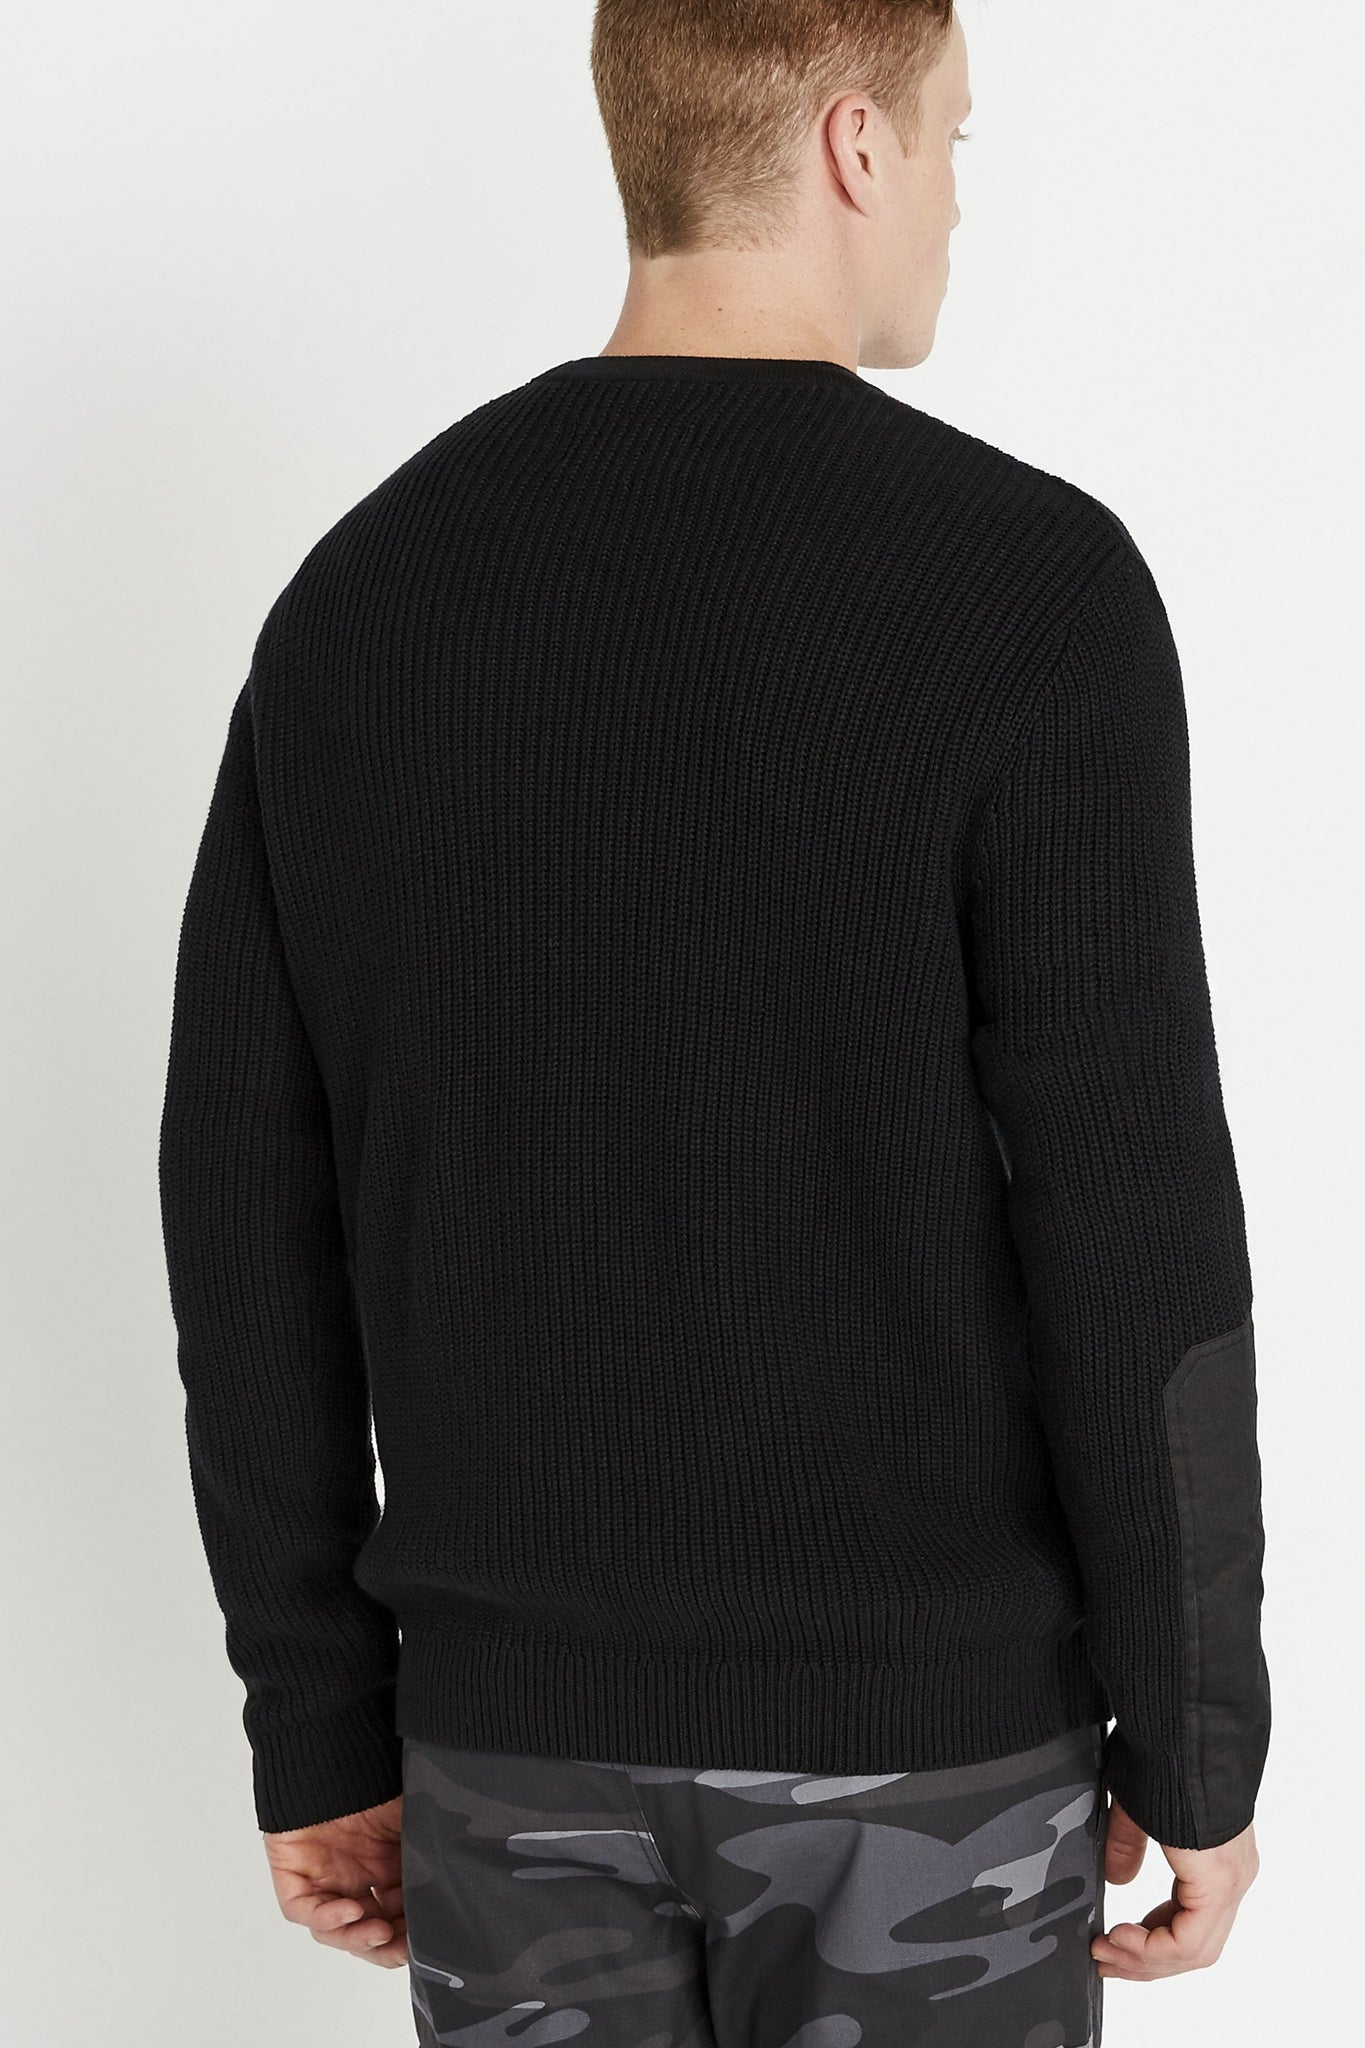 Back view of men wearing a black long sleeve crew neck sweater with patches on sleeves